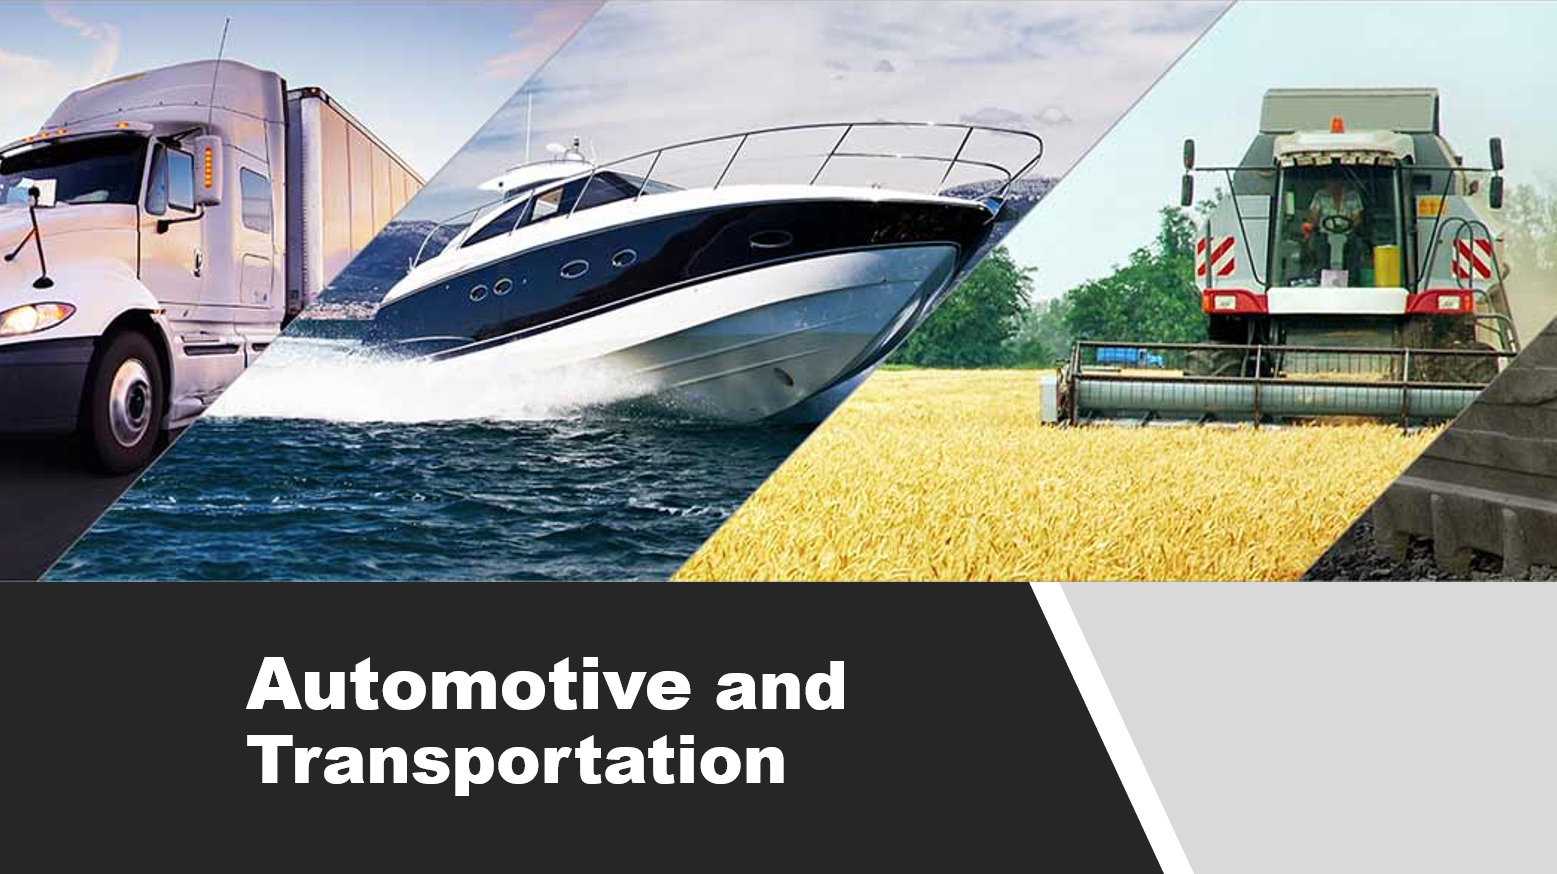 Automation and Transportation